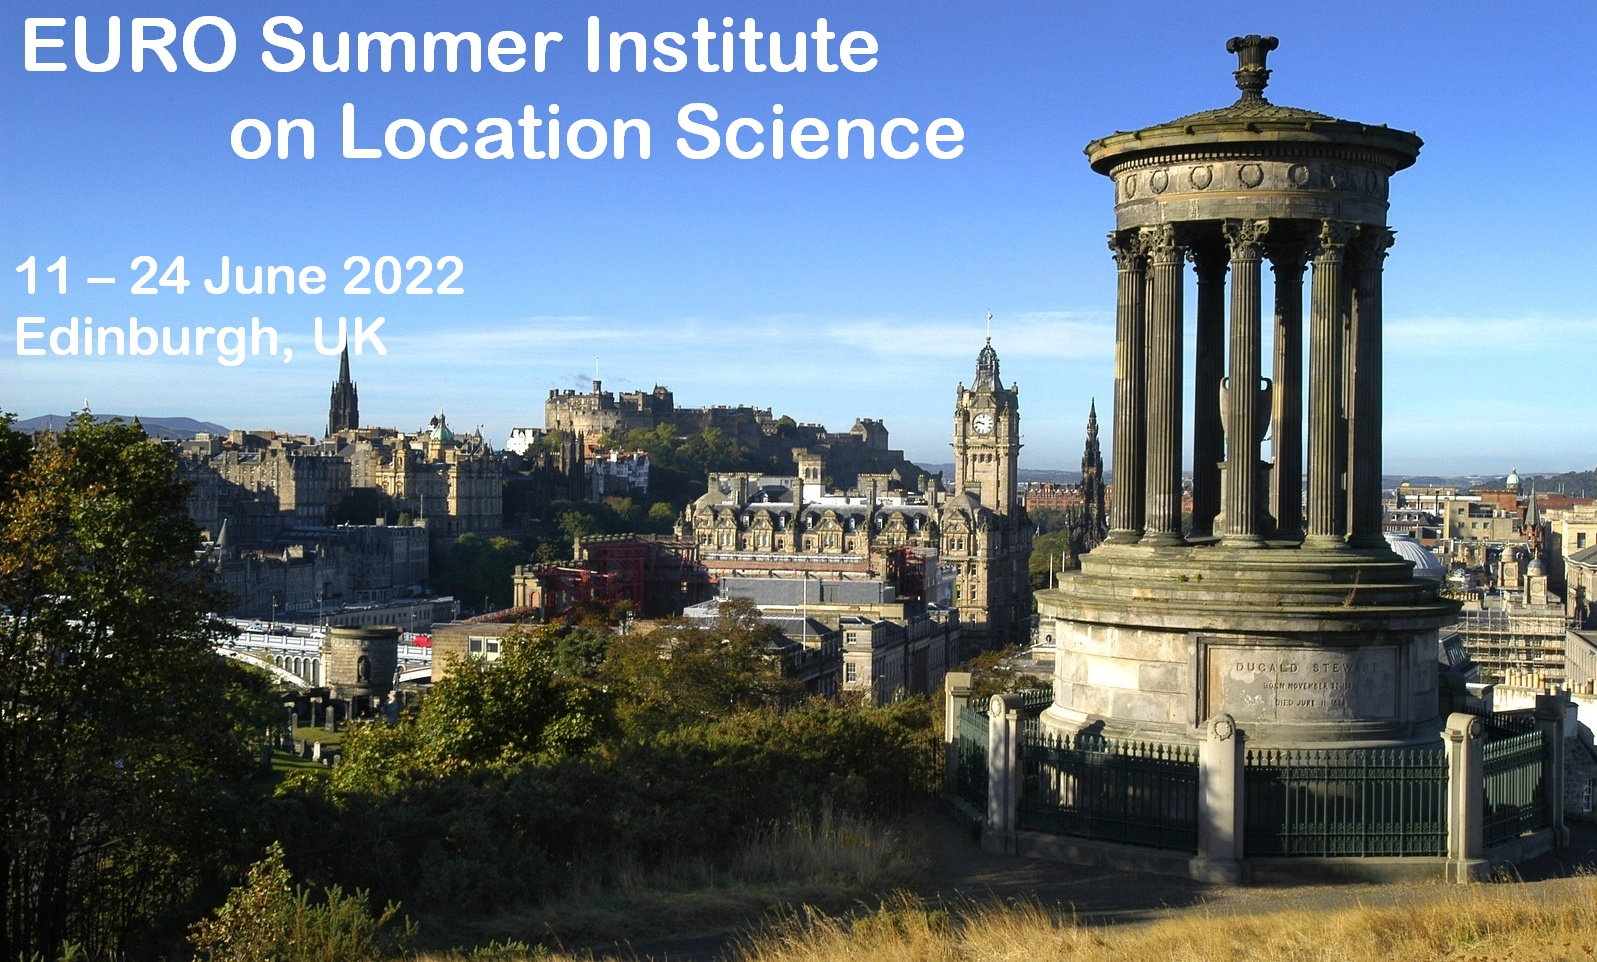 EURO Summer Institute Edinburgh 2022